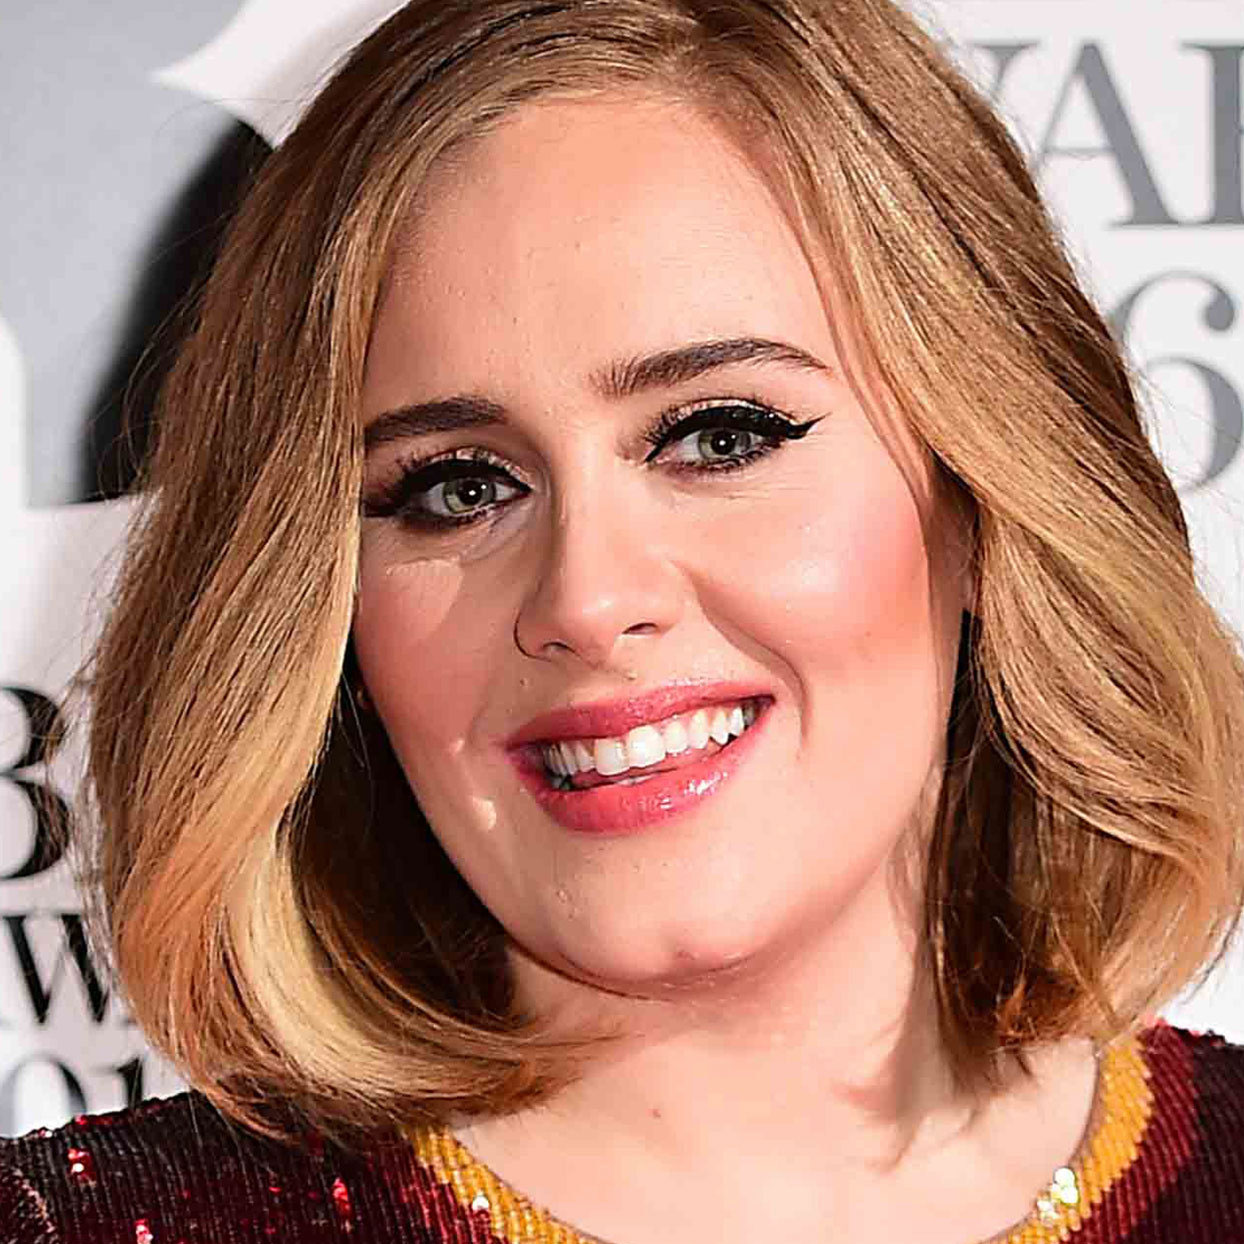 Adele Reportedly Lost 100 Pounds on the Sirtfood Diet—but Is It Healthy?